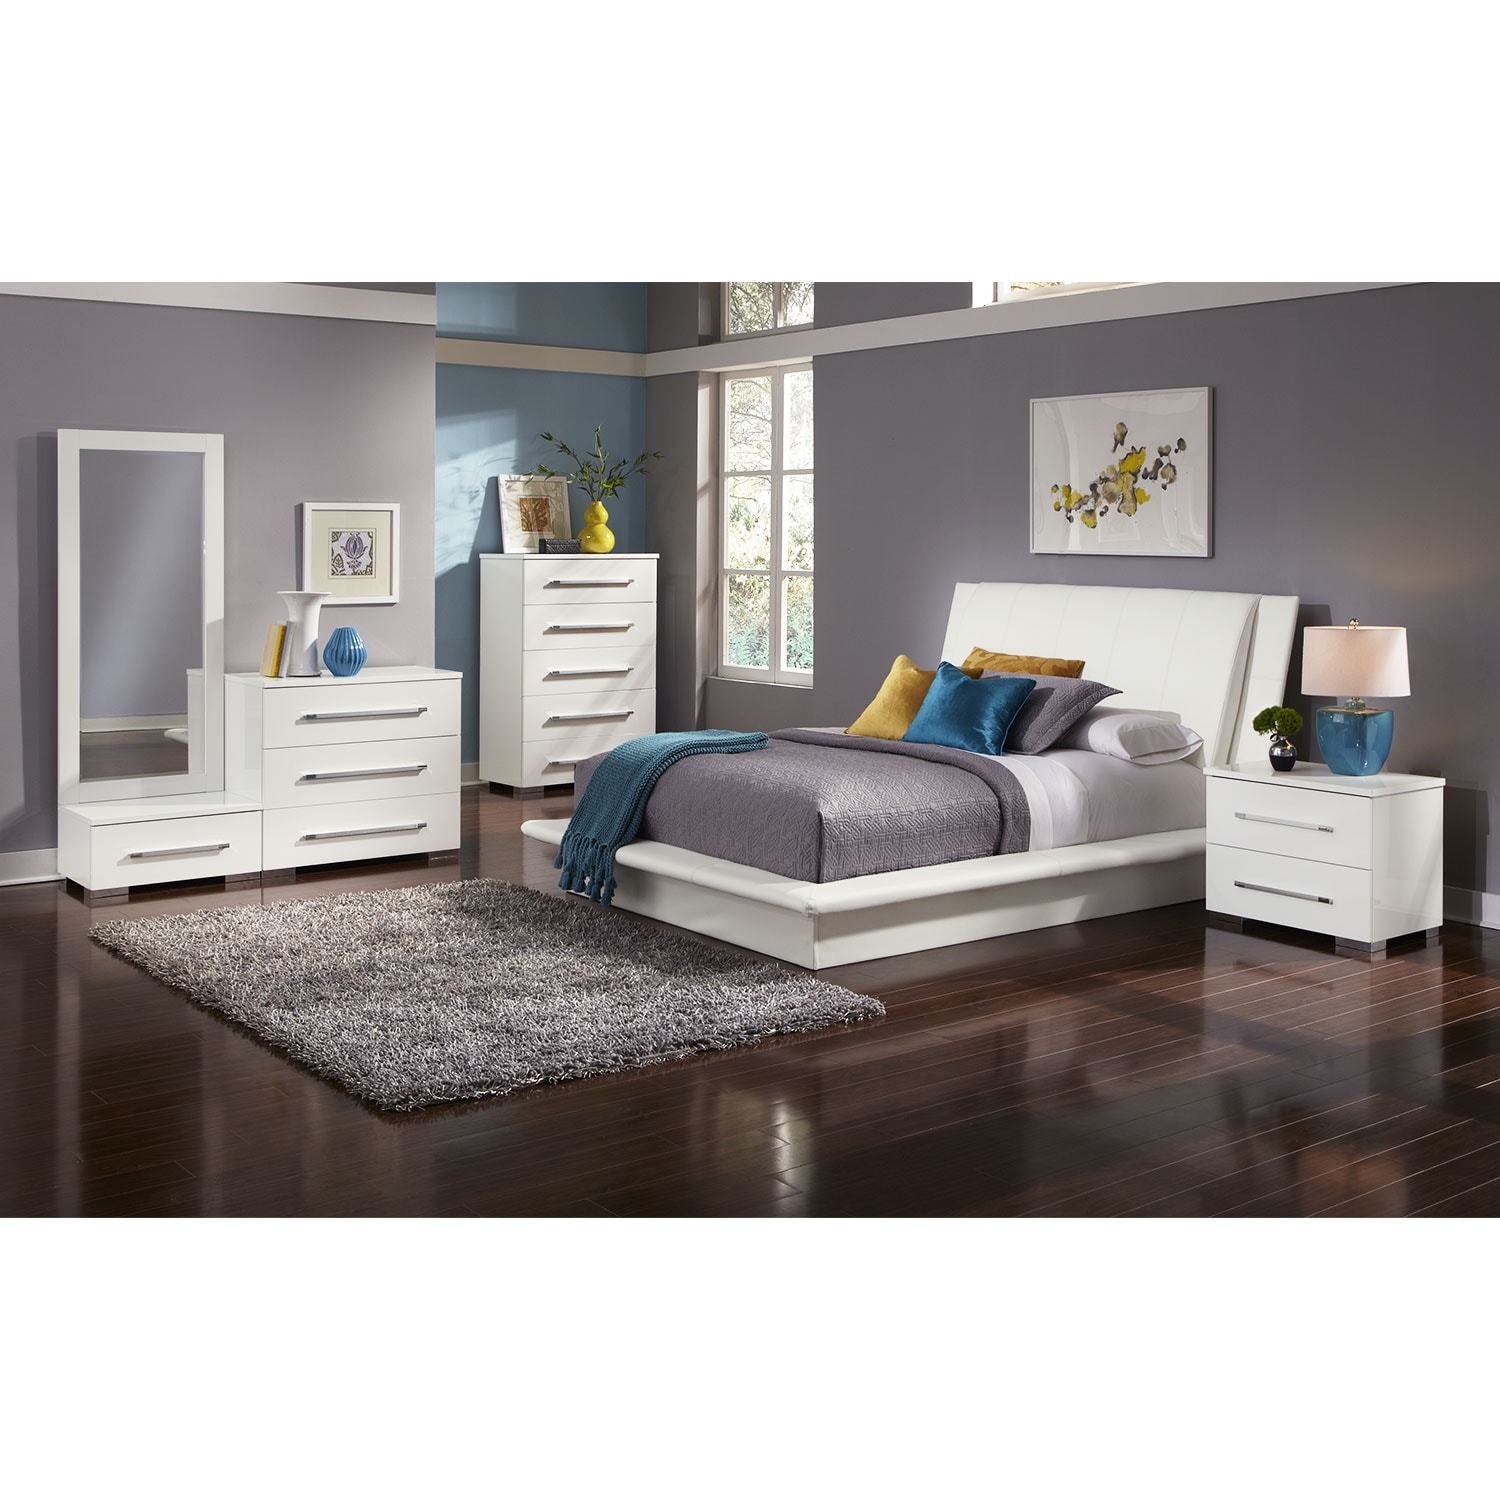 [Dimora White 7 Pc. Queen Bedroom (Alternate)]